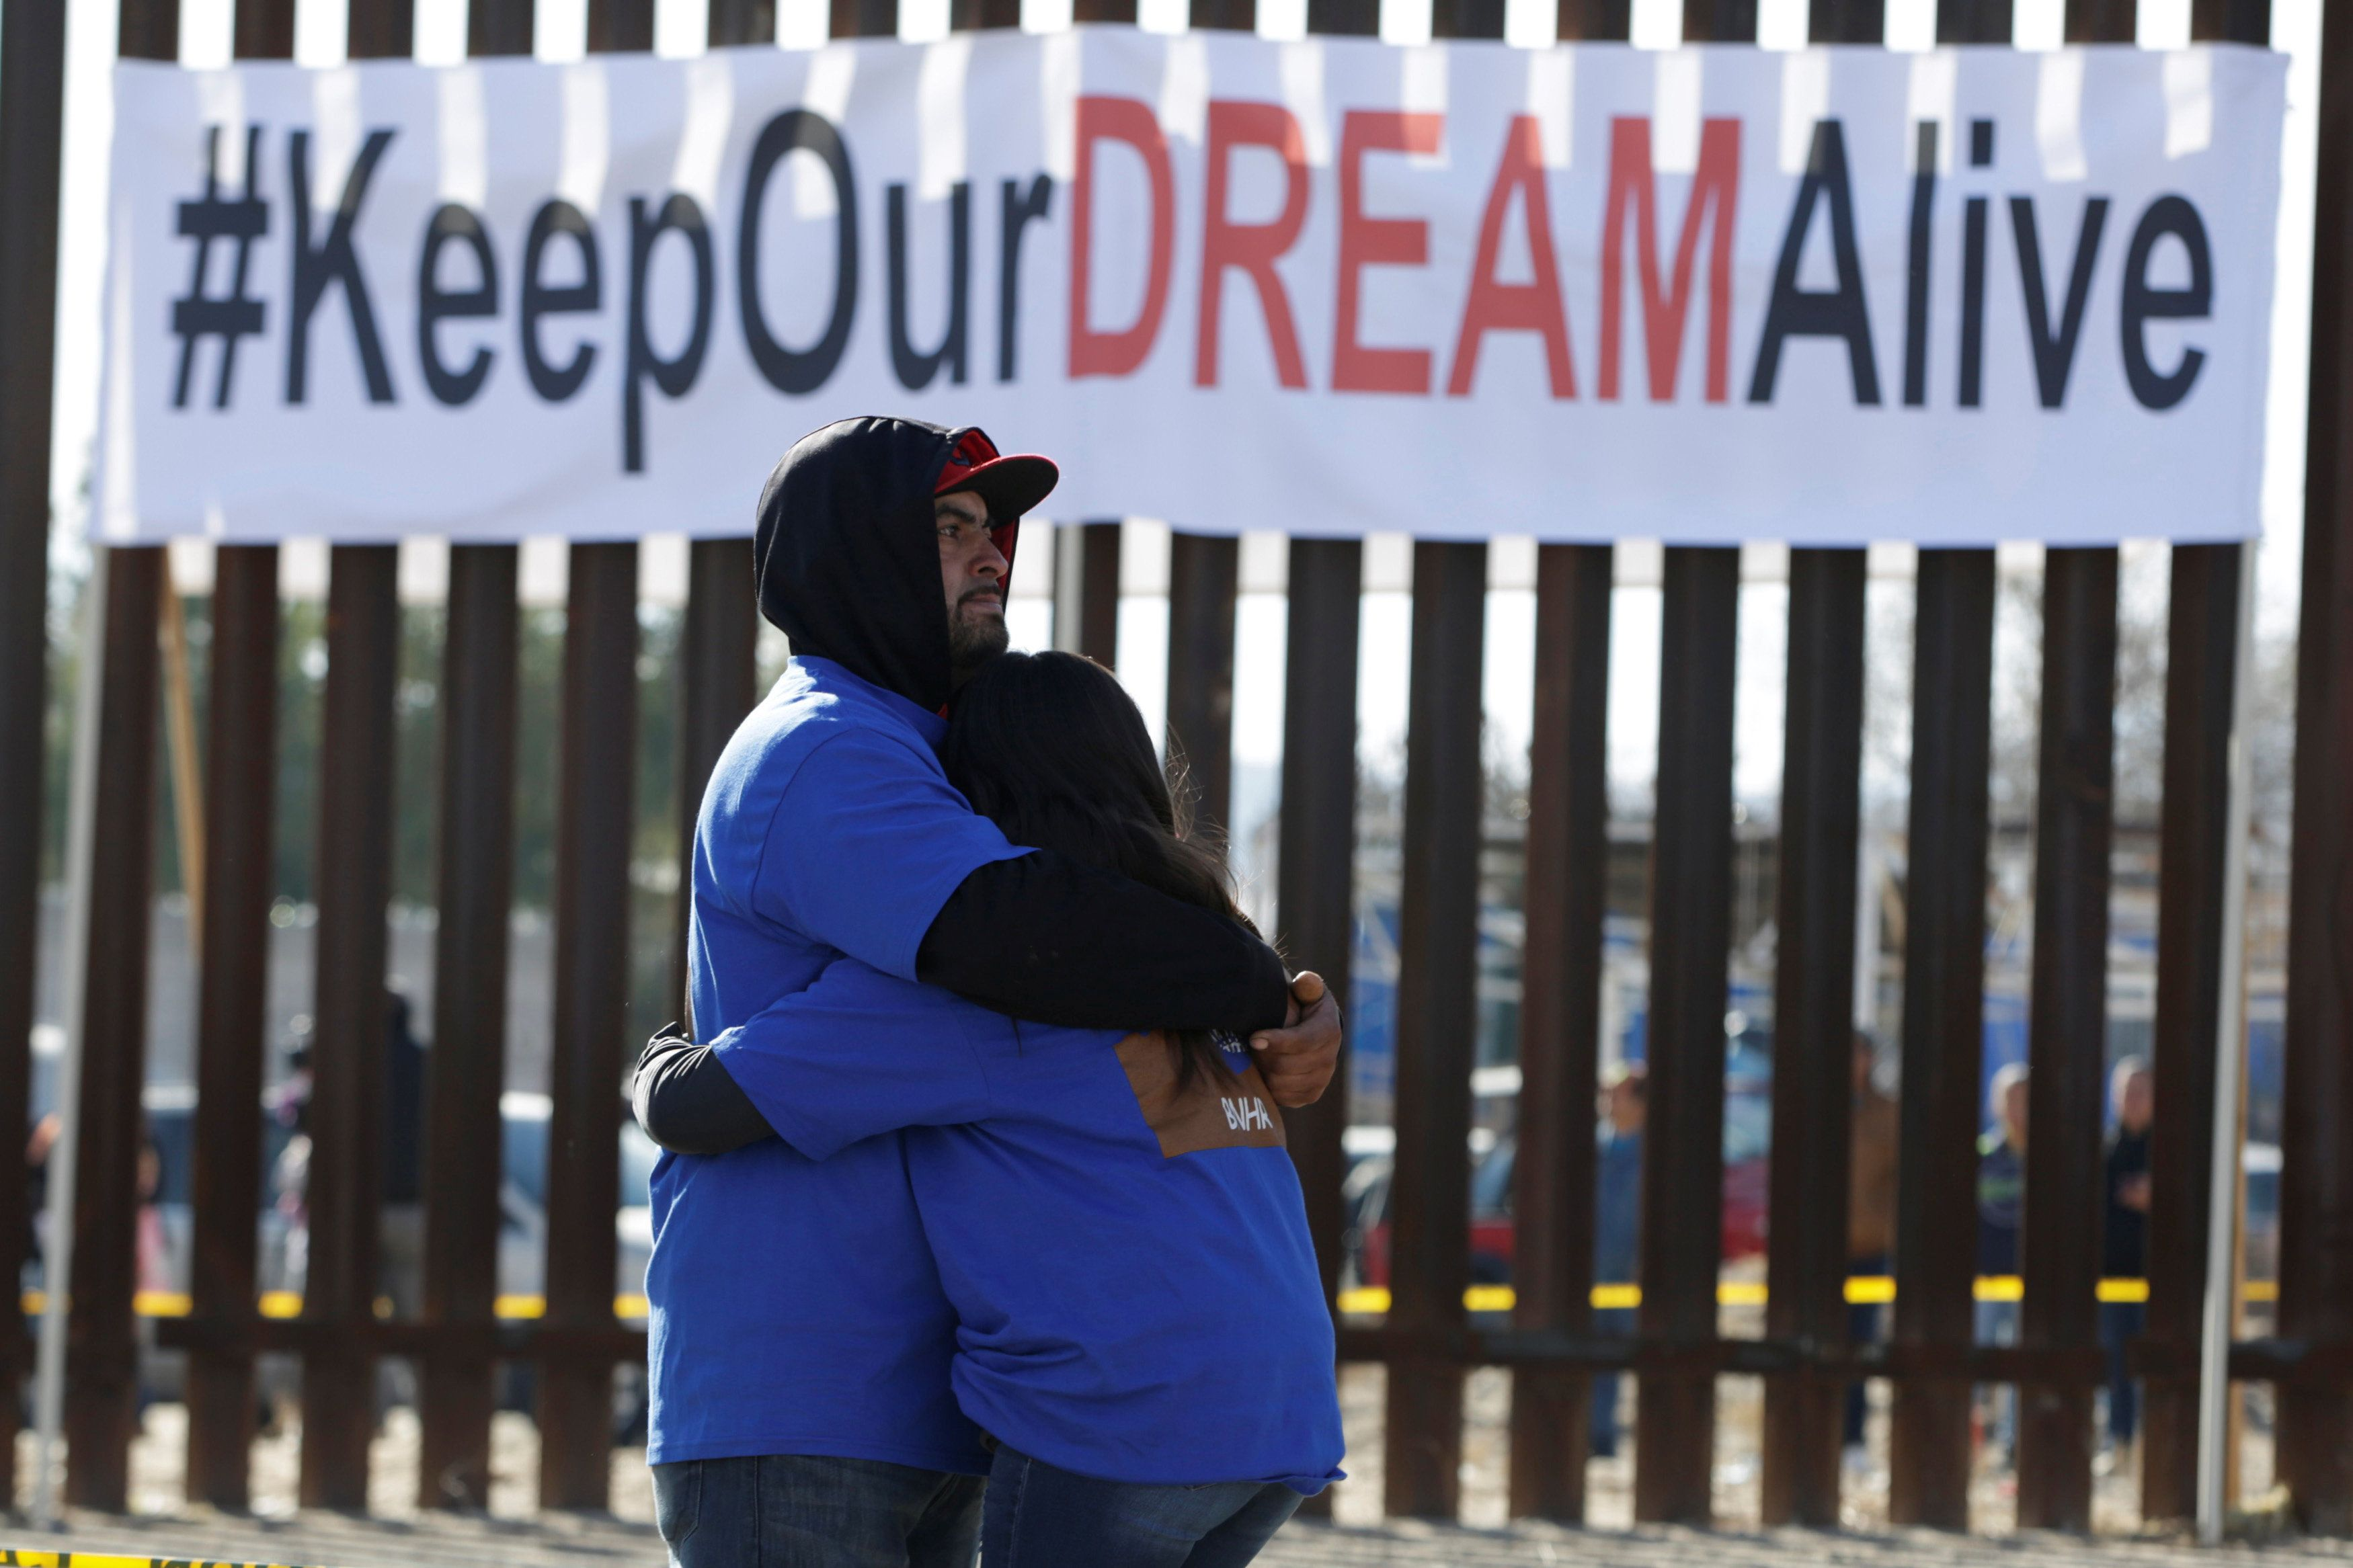 """Dreamers"" hug as they meet with relatives during the ""Keep Our Dream Alive"" binational meeting at a new section of the borde"